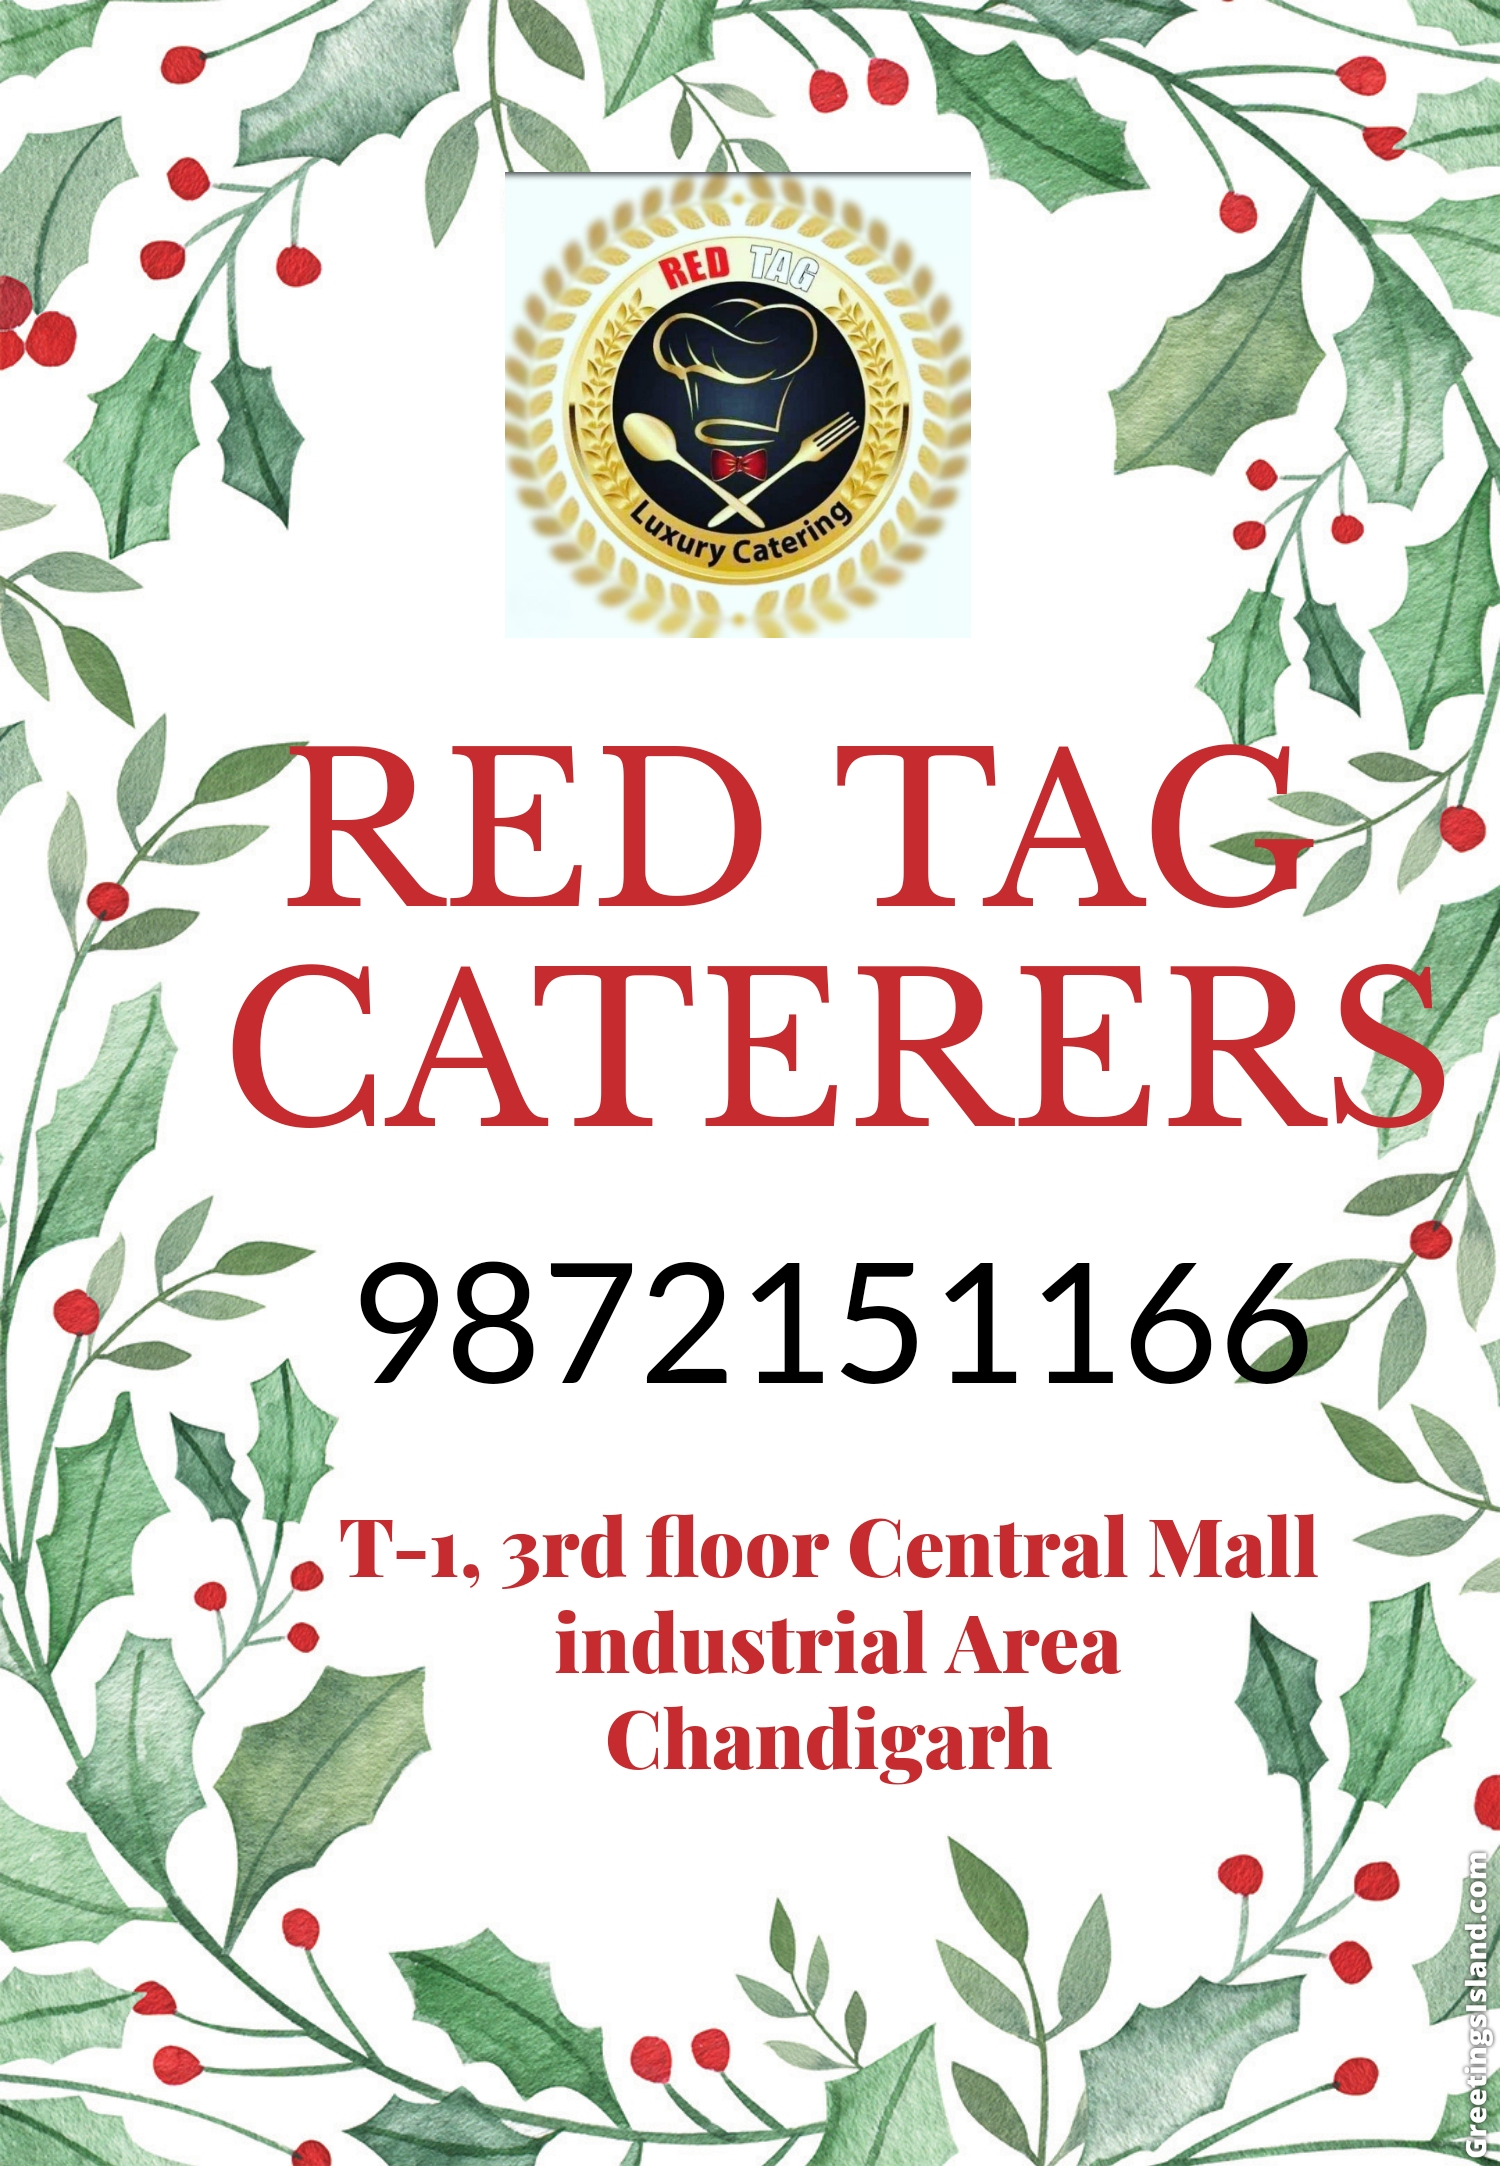 Red Tag Caterers, Premier catering service in Chandigarh, luxury caterers in Chandigarh, top one catering in Chandigarh, exclusive catering company in Chandigarh